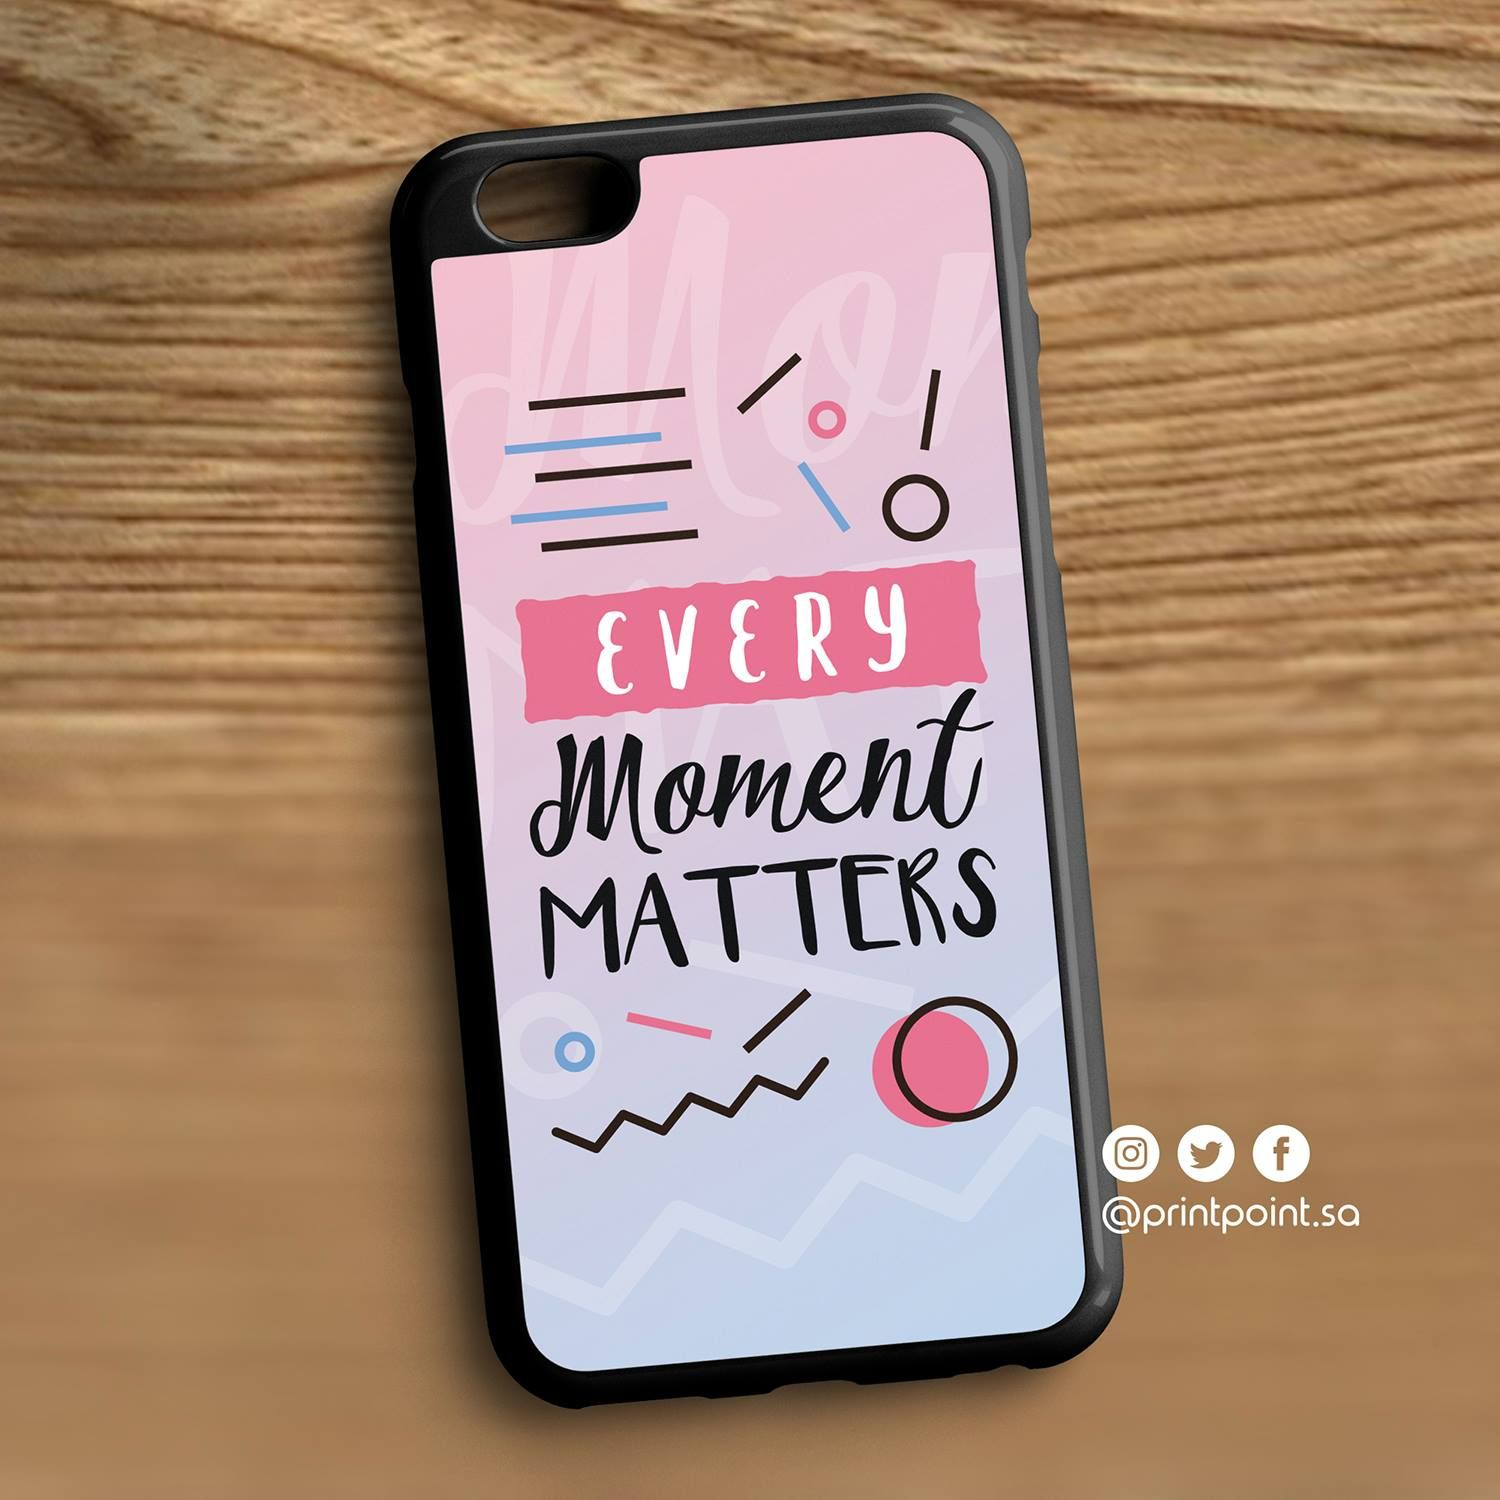 Pin By Print Point On Printing And Accessories Phone Cases Gifts Phone